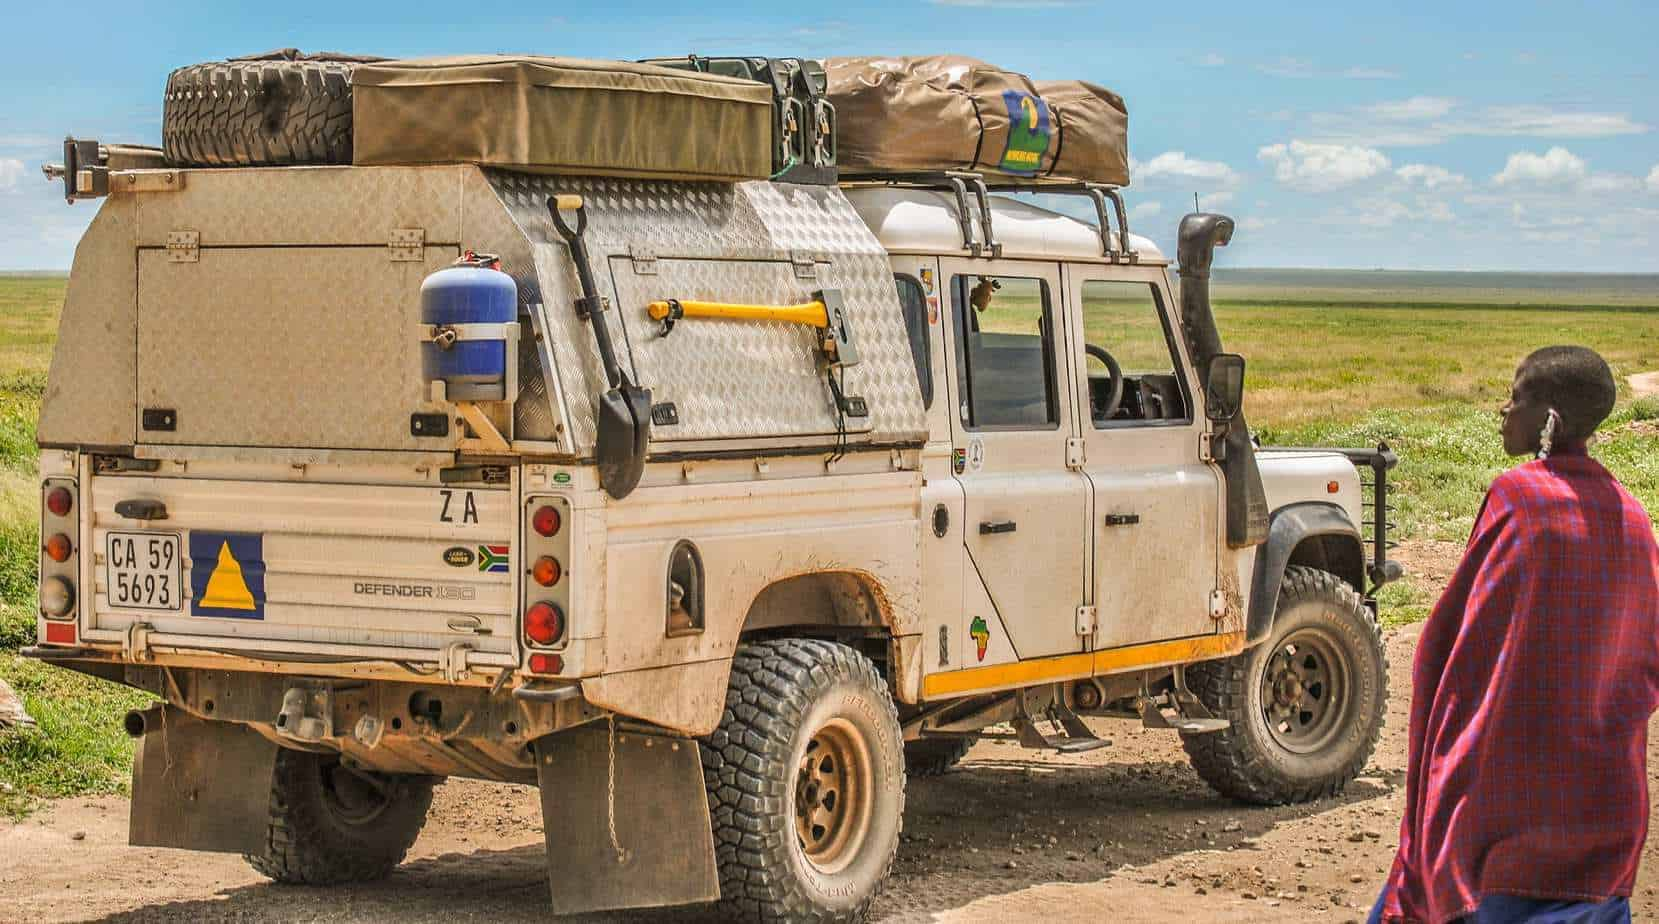 A2A EXPEDITION: Memories of Africa